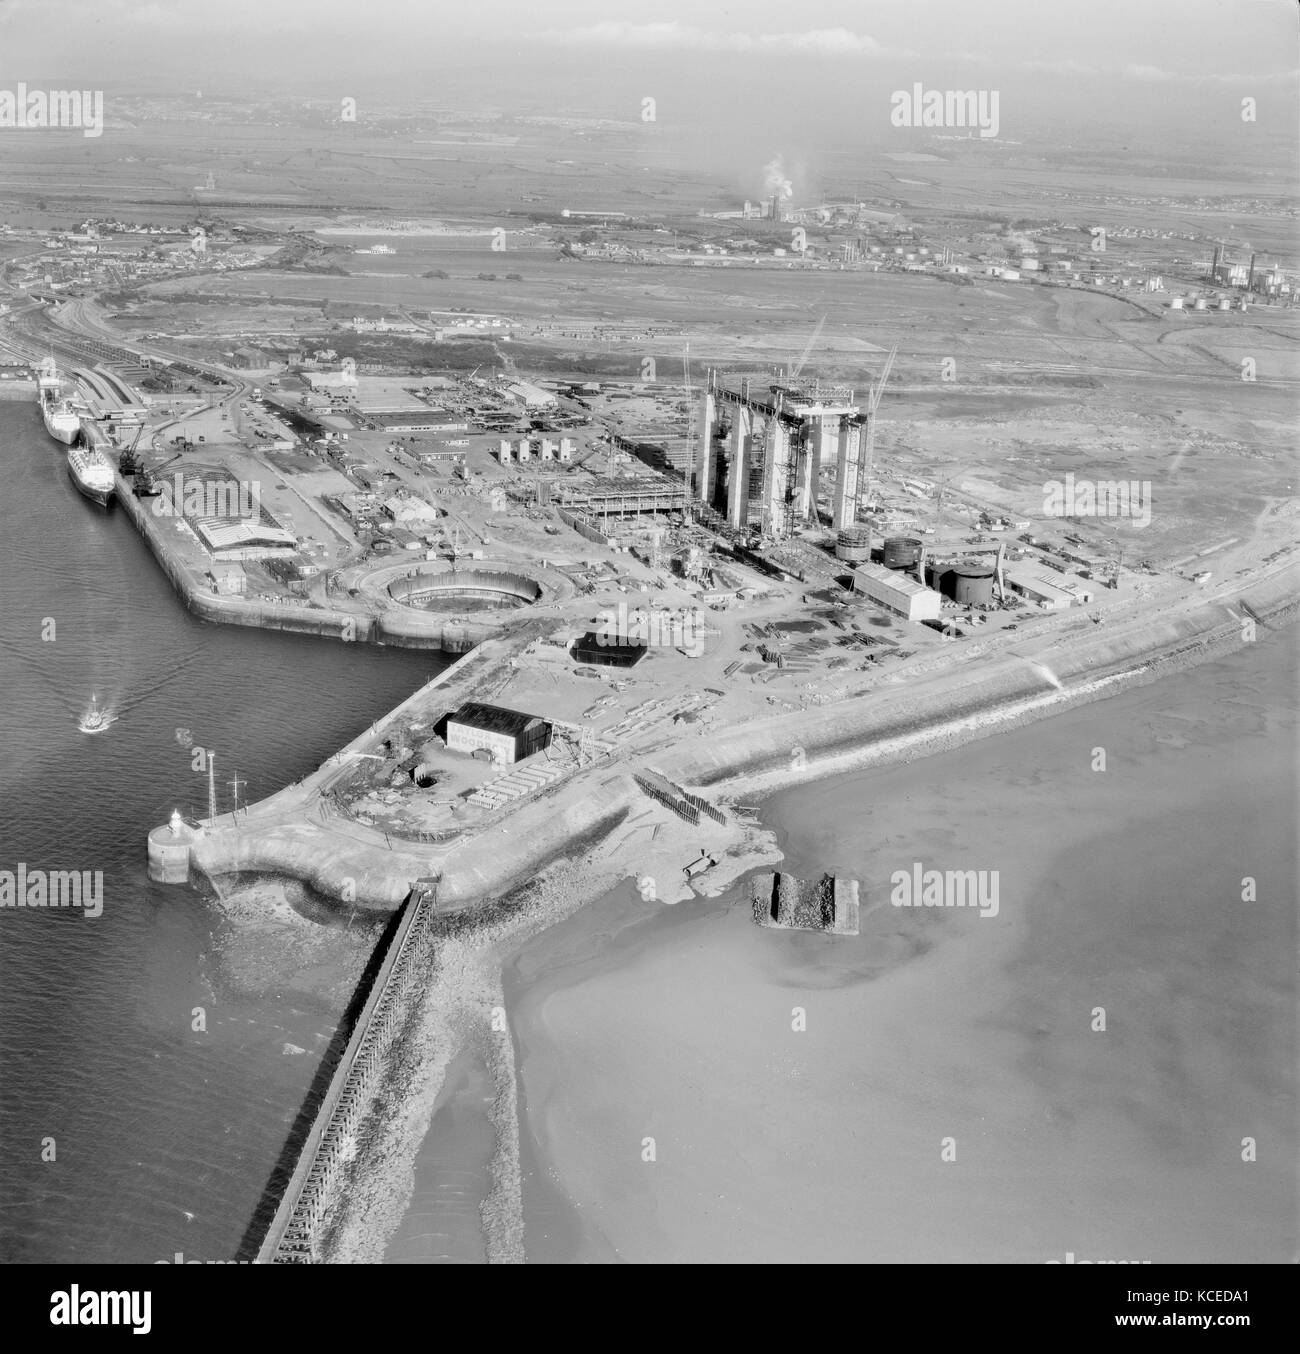 Heysham, Lancashire. Construction of a nuclear power station. Photographed in July 1964. Aerofilms Collection. - Stock Image